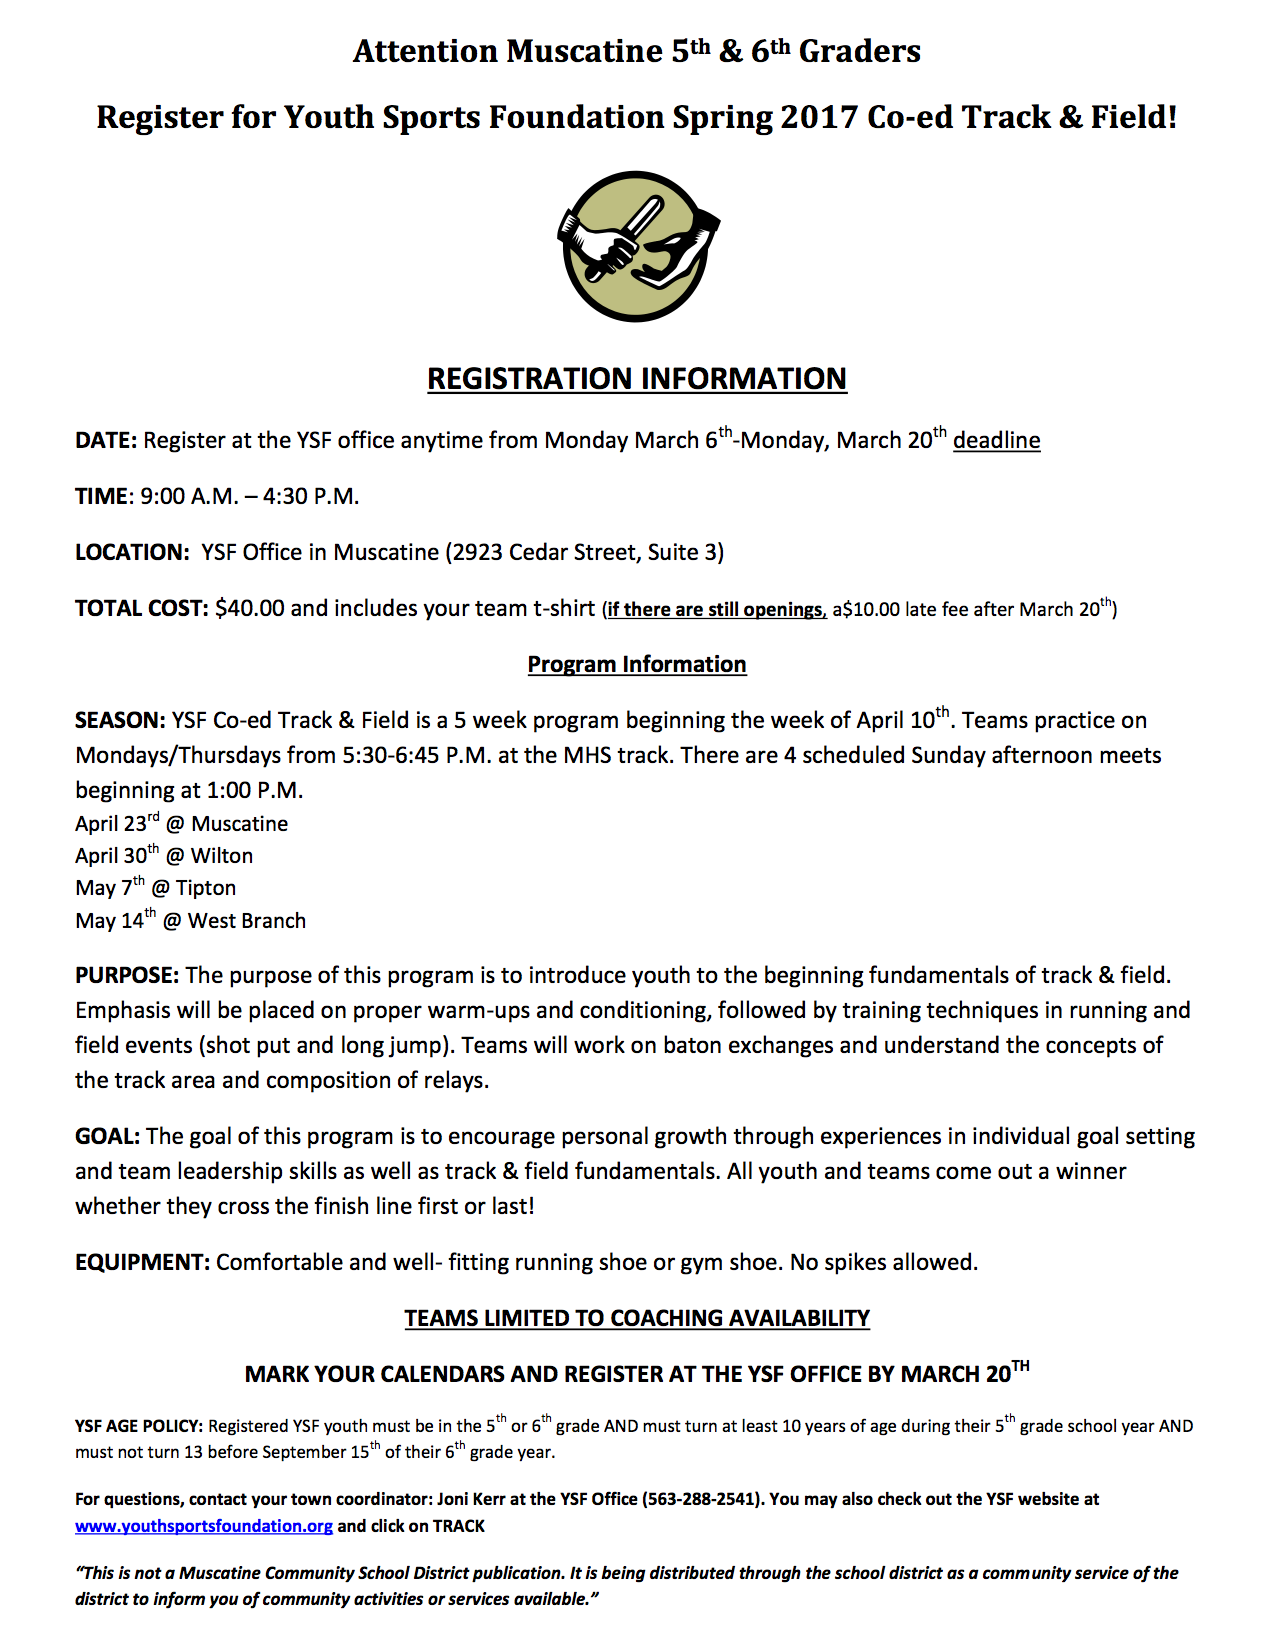 5th & 6th Grade Co-ed Track & Field Sign Up! - Muscatine Community ...